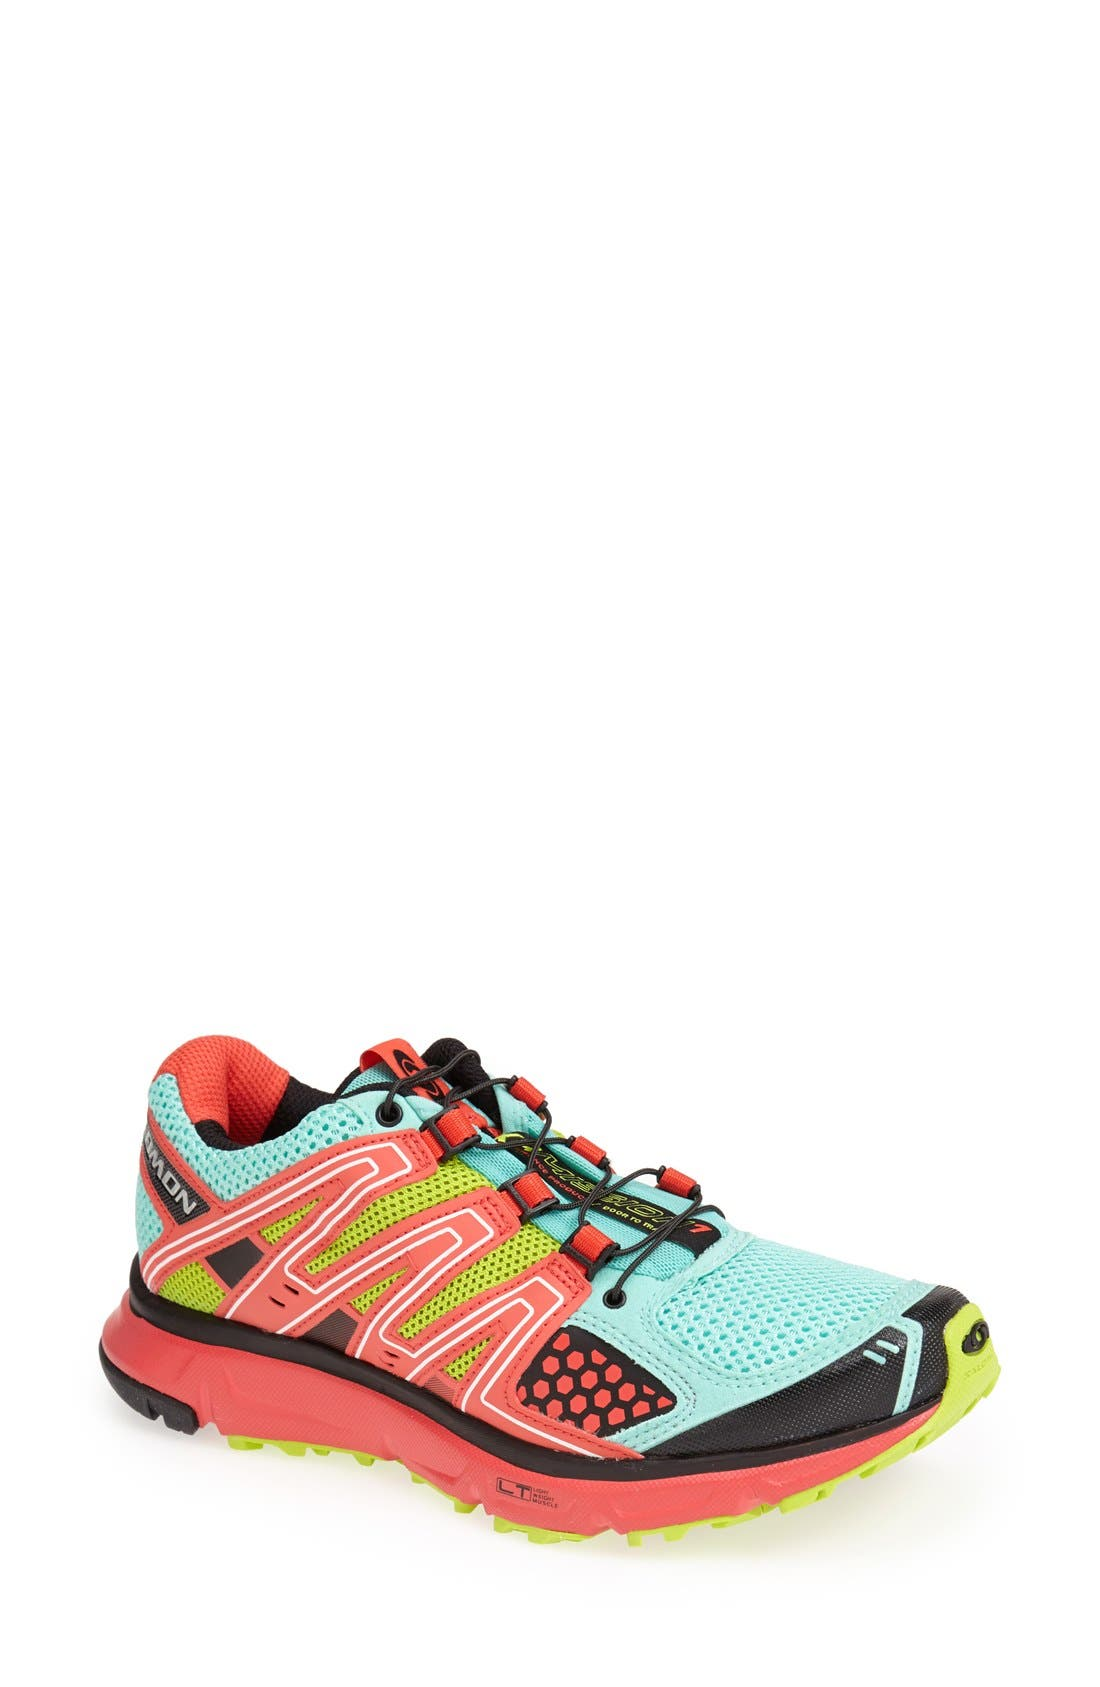 Alternate Image 1 Selected - Salomon 'XR Mission' Trail Running Shoe (Women)